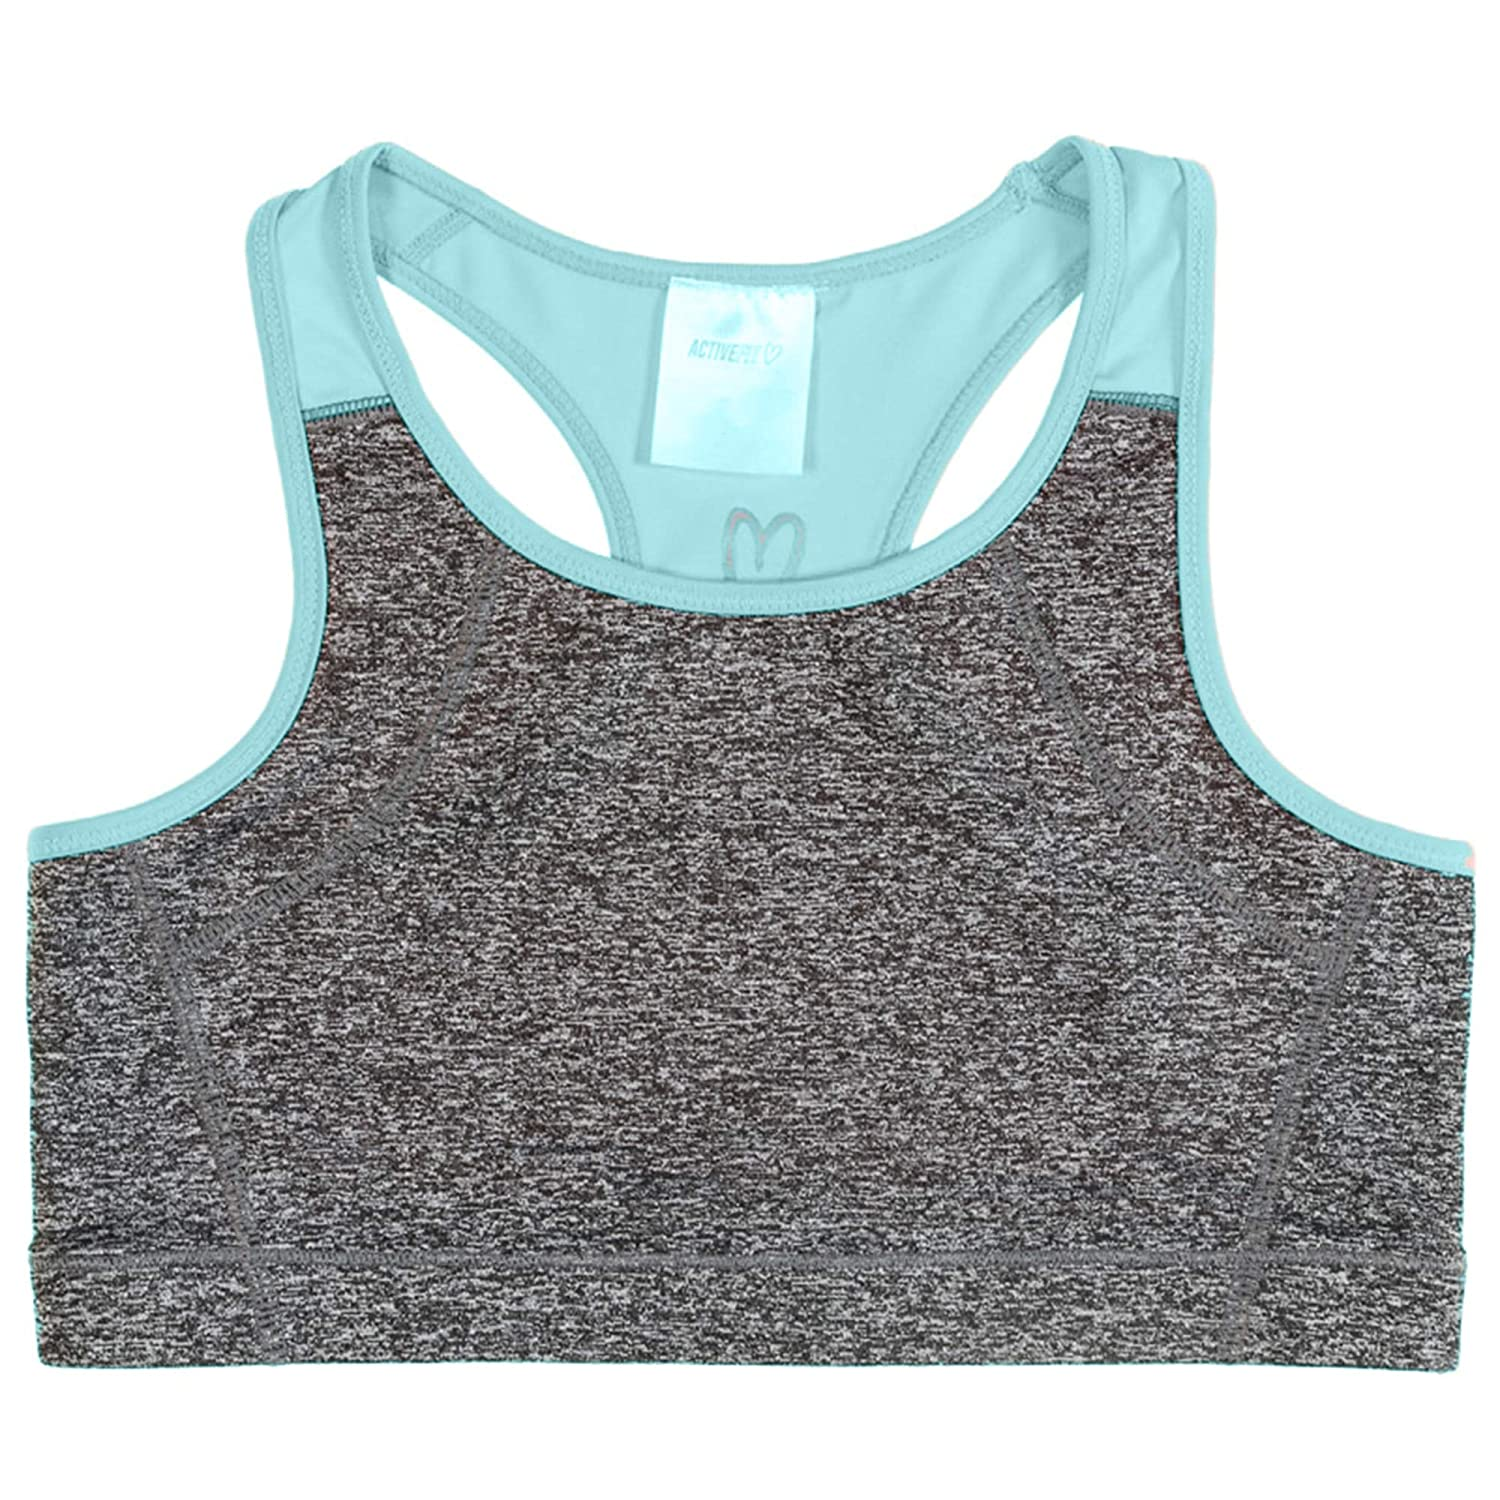 Girls Active Sports Fitness Yoga Dance Crop Top